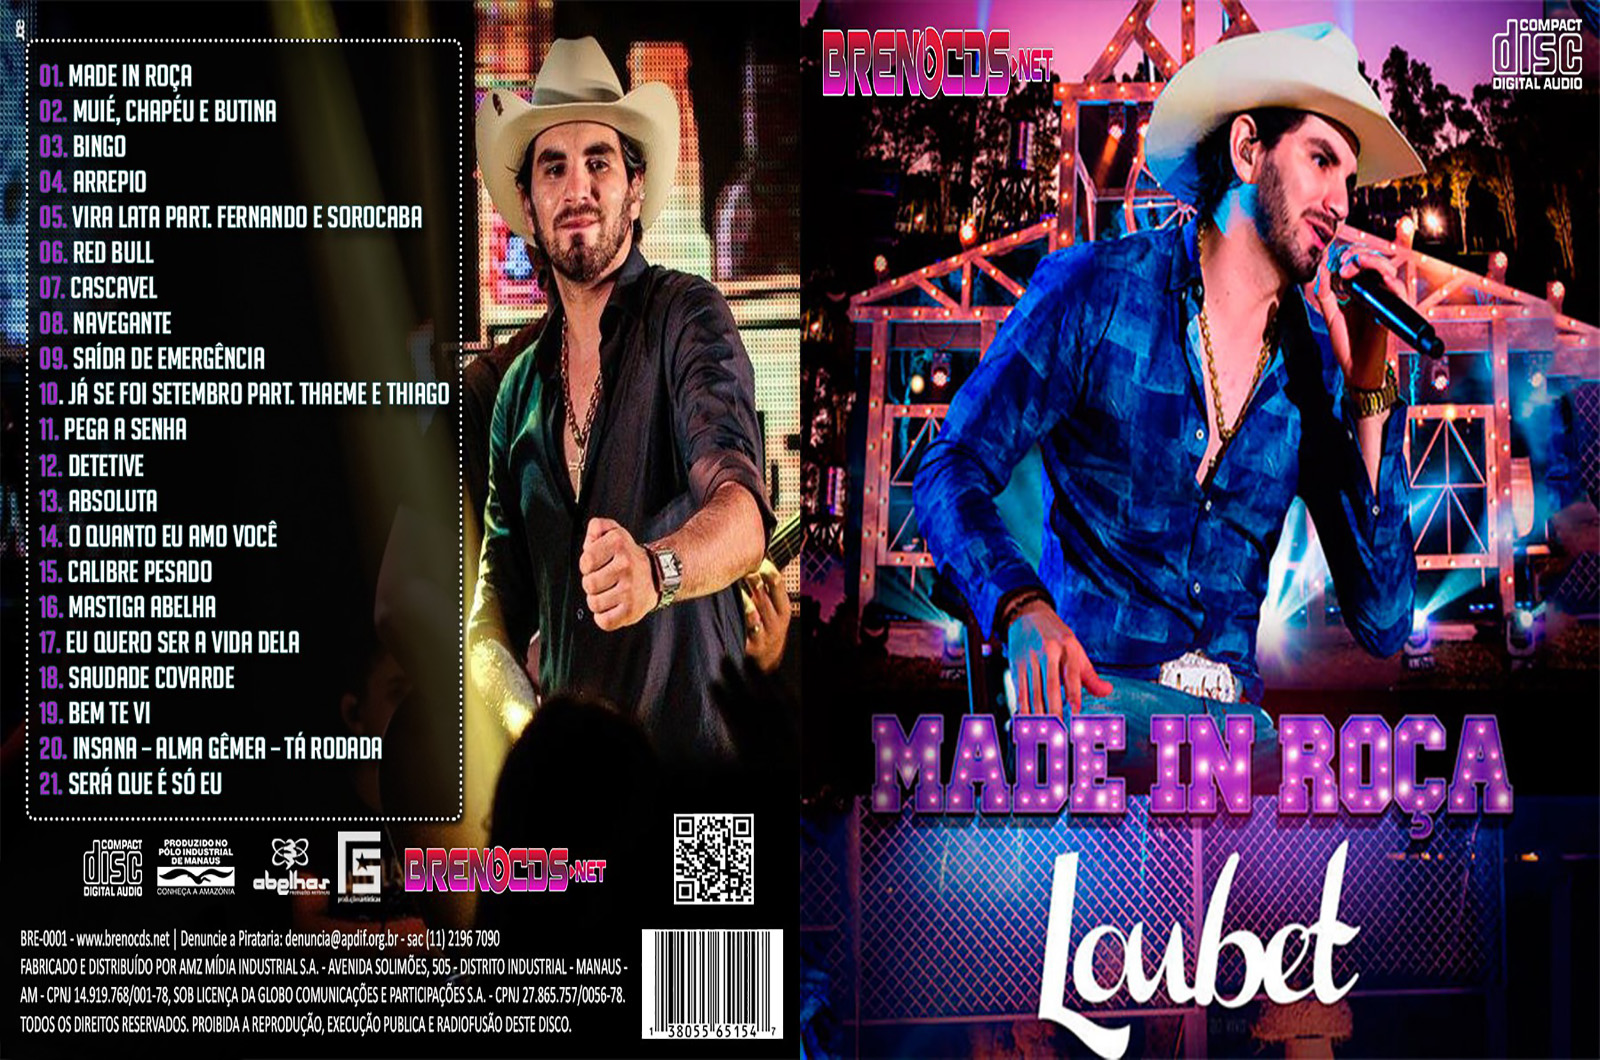 Download Loubet Made in Roça DVDRip + DVD-R Download Loubet Made in Roça DVDRip + DVD-R xxLoubet Made In Ro 25C3 25A7a Ao Vivo 2016